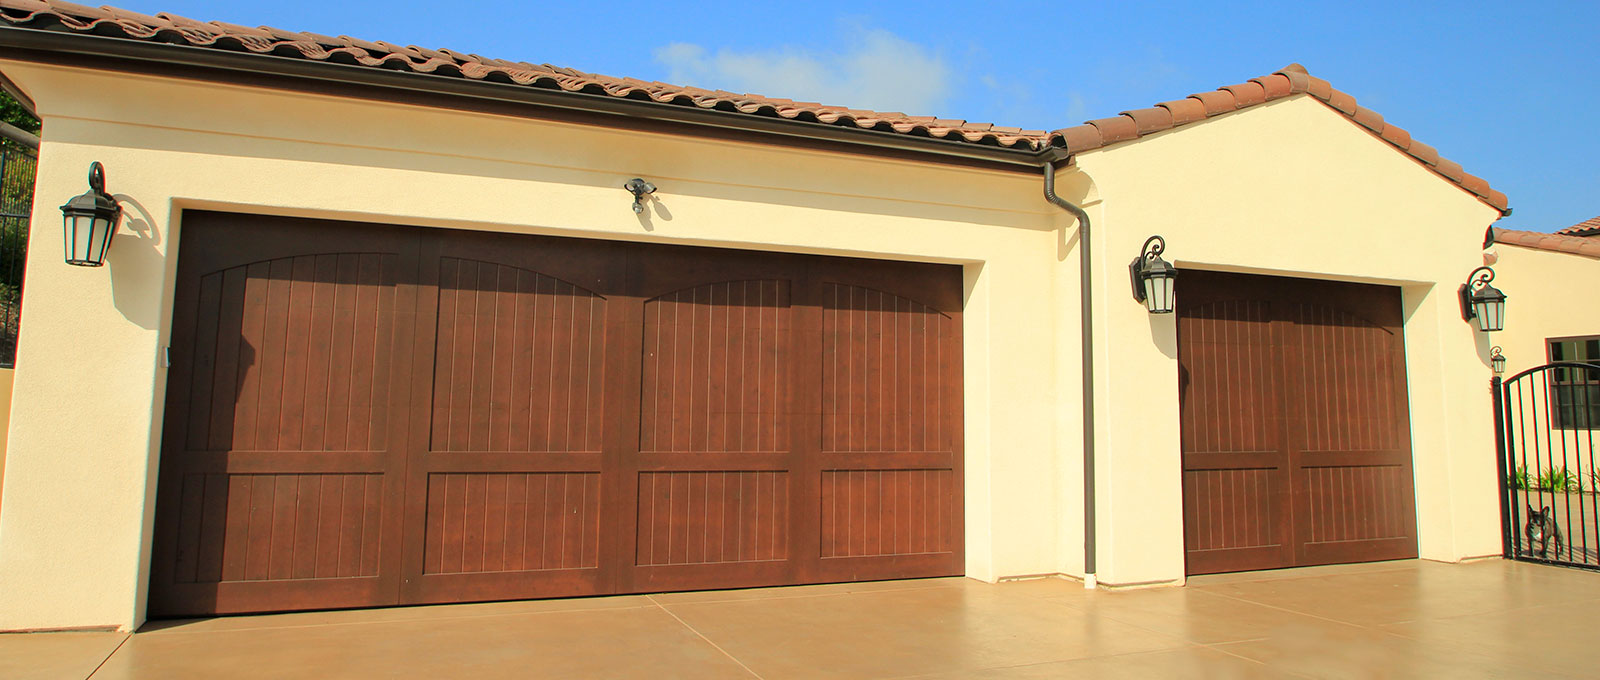 Stain grade custom wood garage doors garage doors unlimited for Stained garage doors